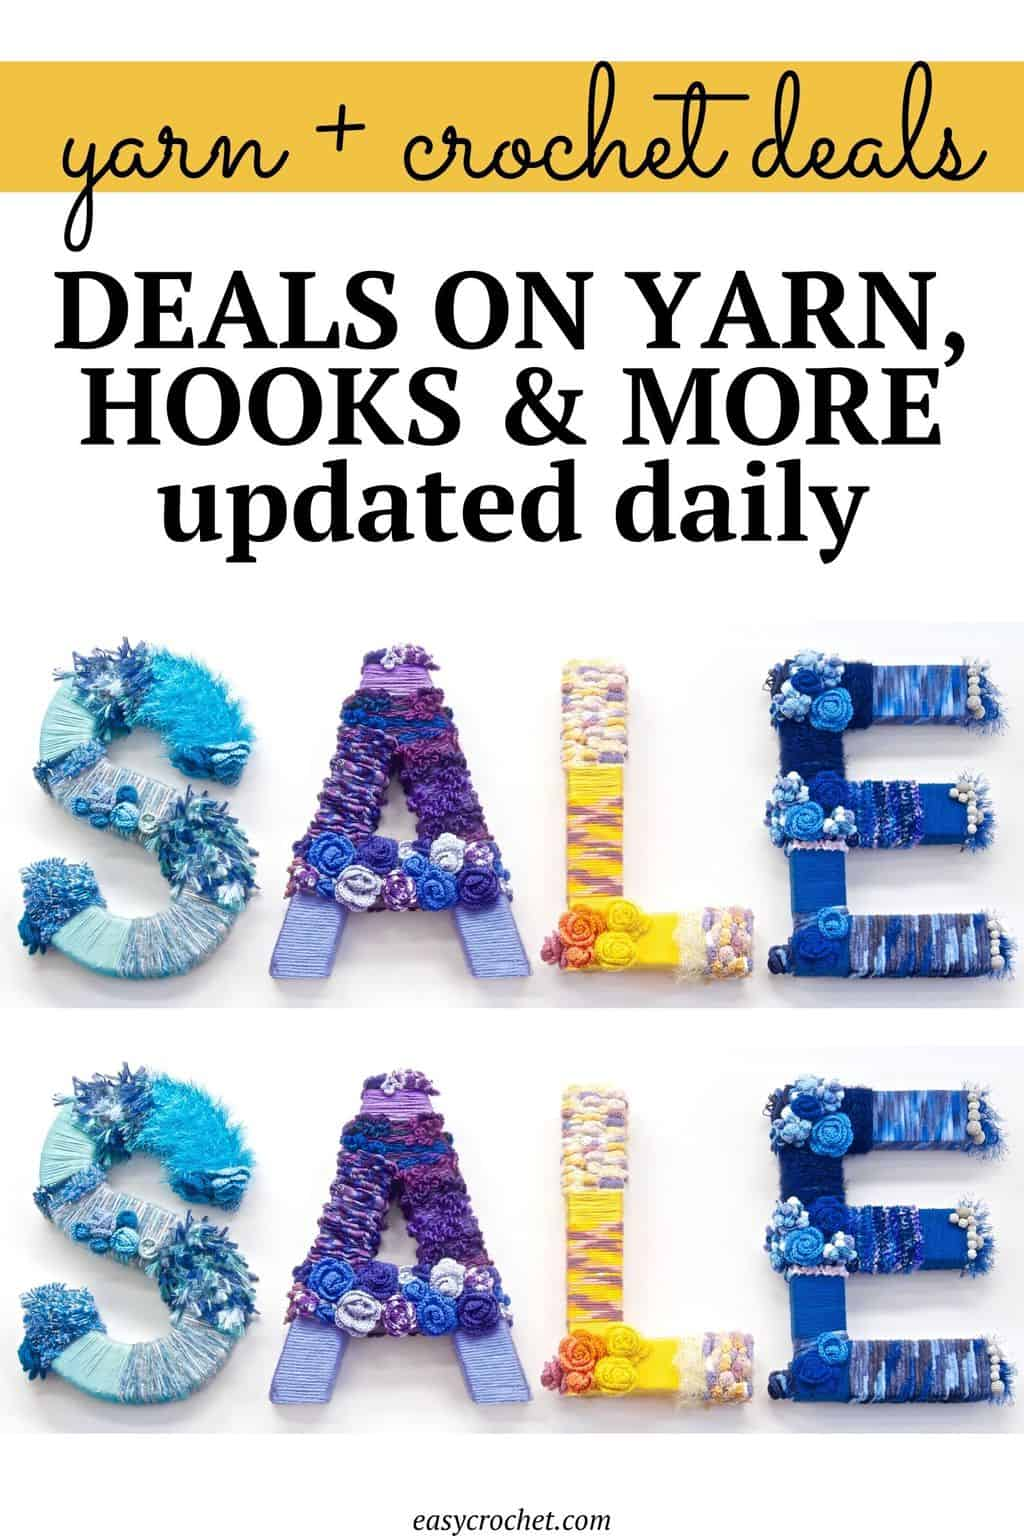 daily yarn deals